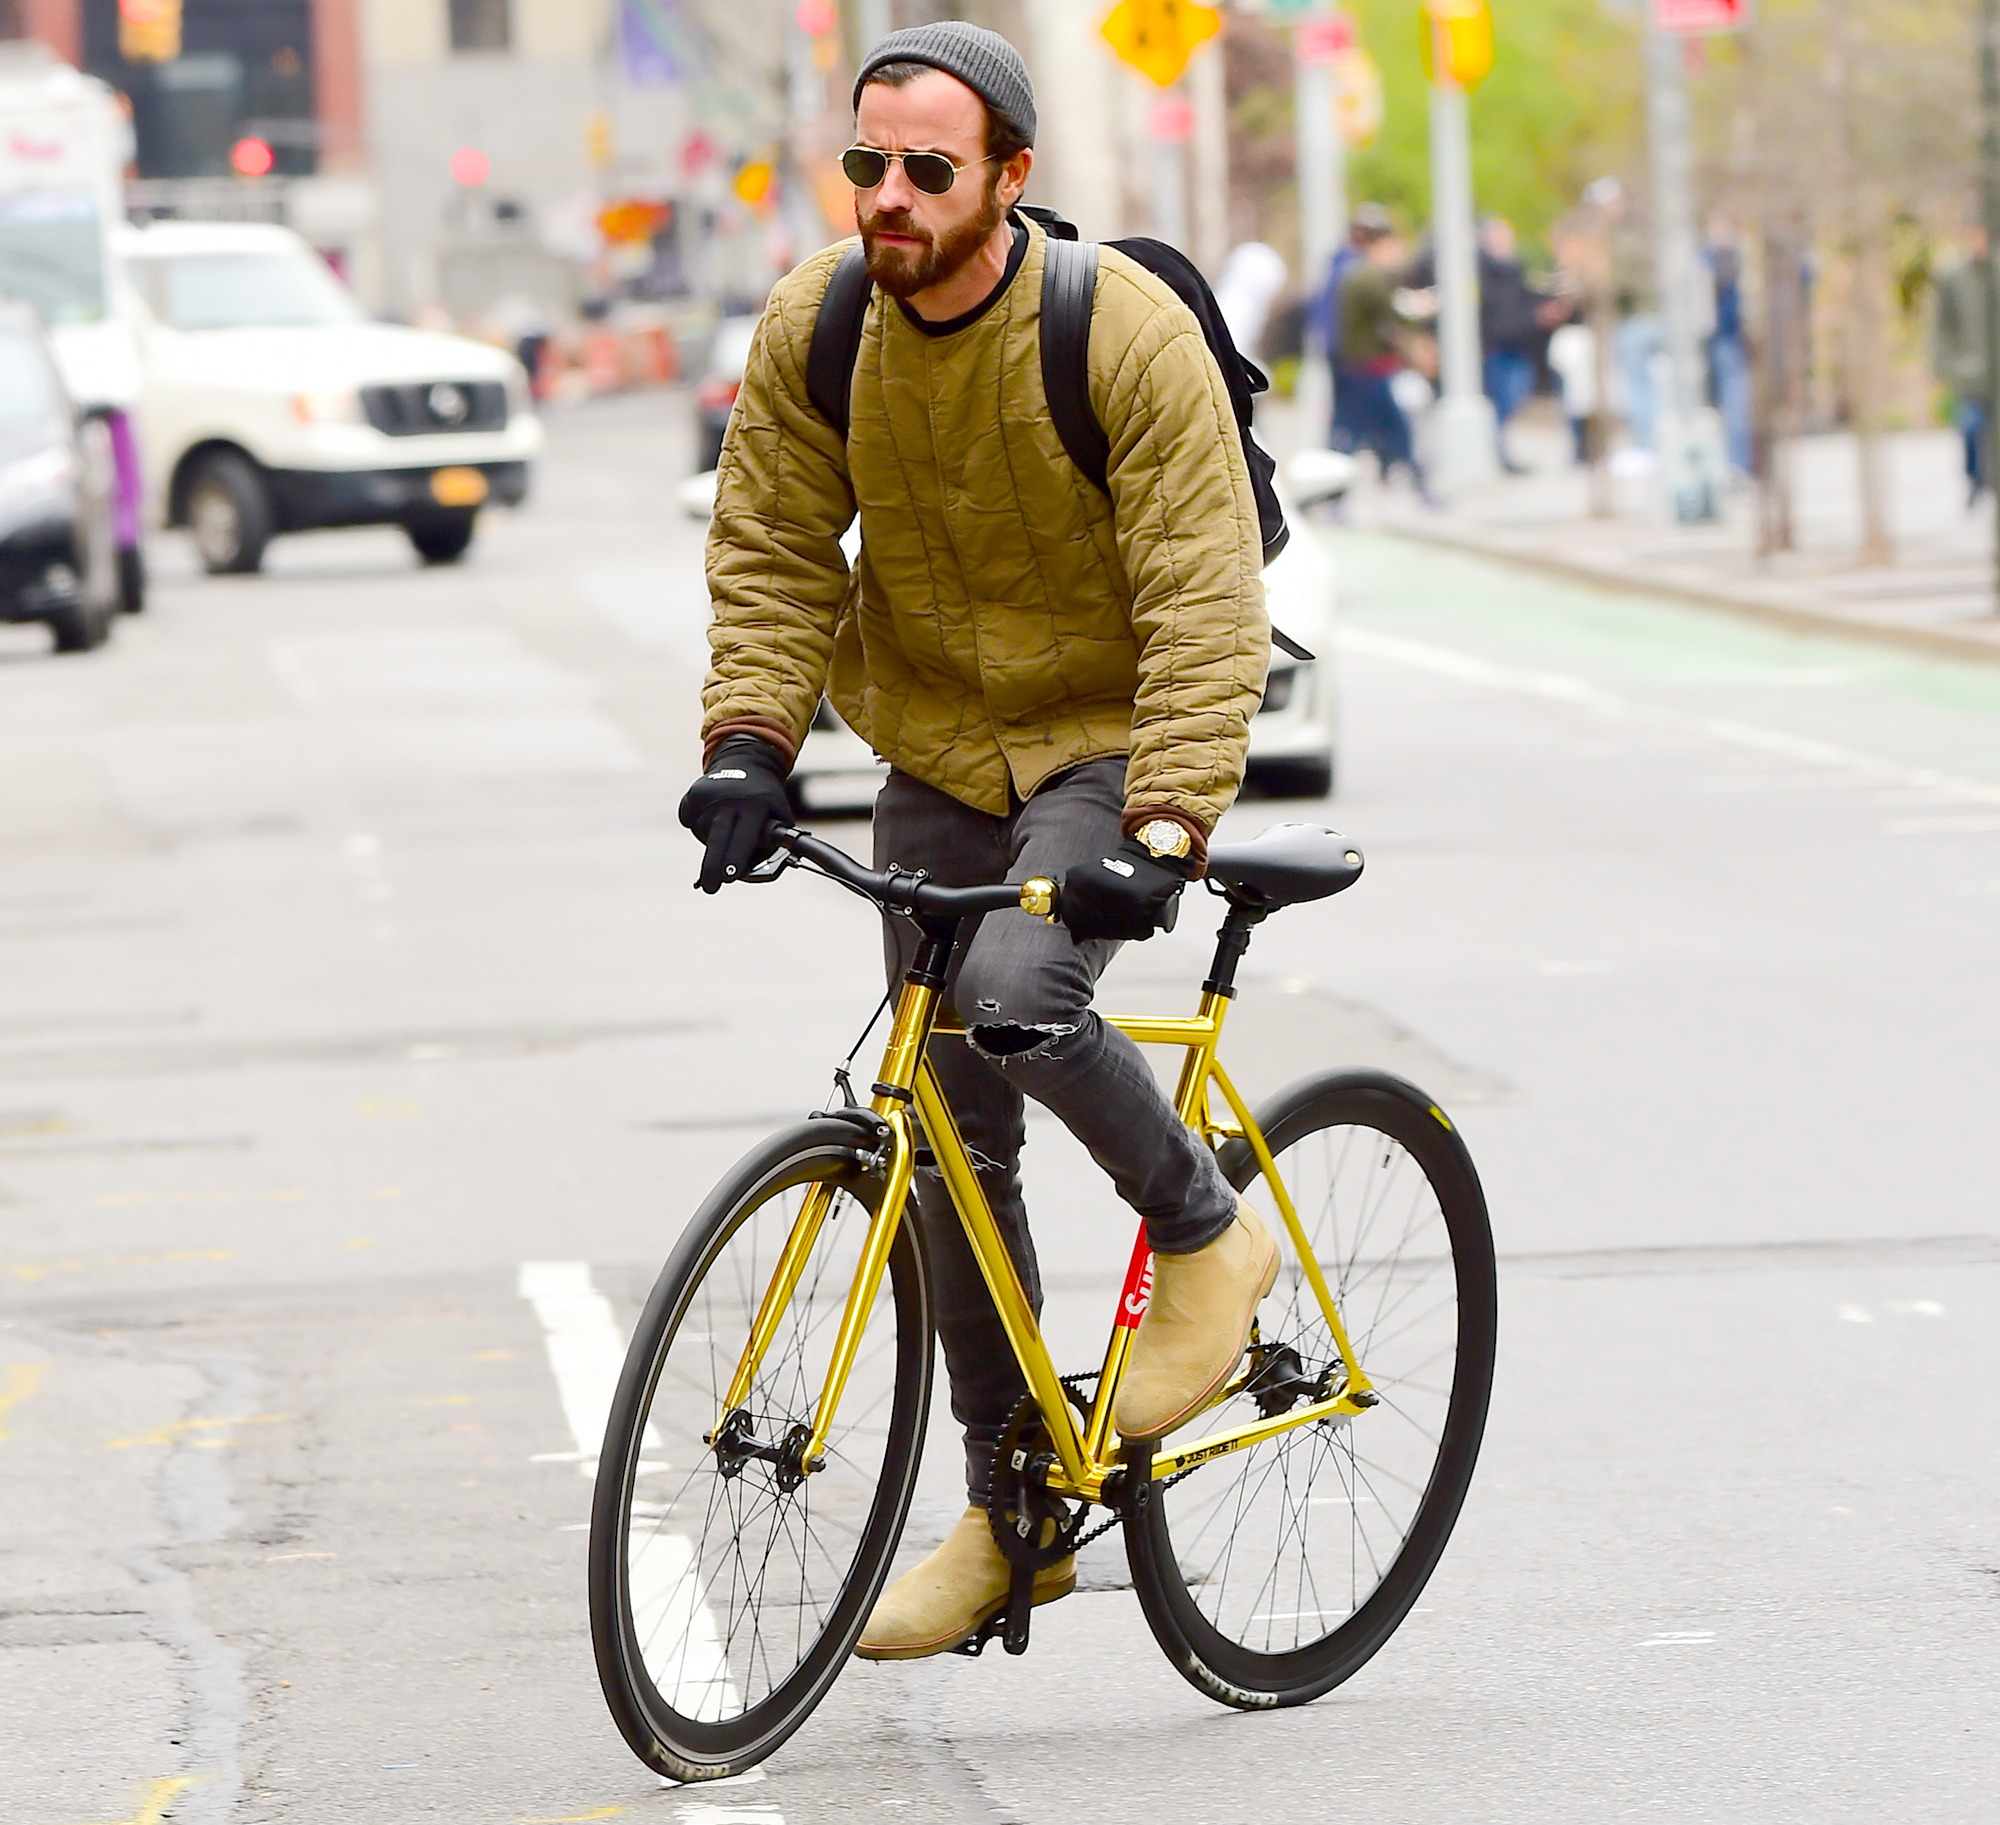 Justin-Theroux-biking - NEW YORK, NY – APRIL 17: (EXCLUSIVE COVERAGE) Actor Justin Theroux is seen biking in Soho on April 17, 2018 in New York City. (Photo by Raymond Hall/GC Images)